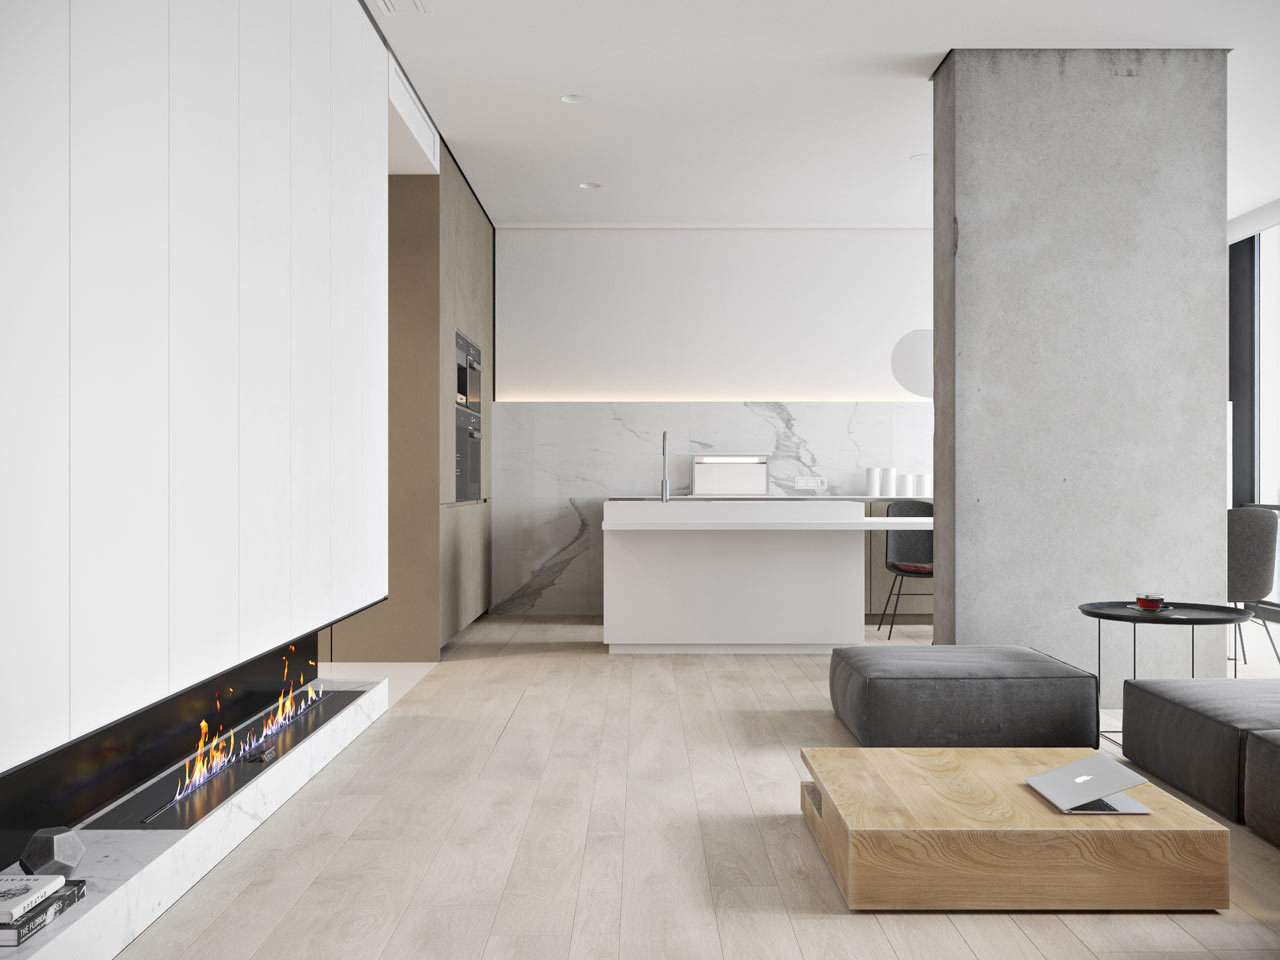 Design Interieur Blog Ten Tips For Minimalist Interior Design Dstld Blog Dstld